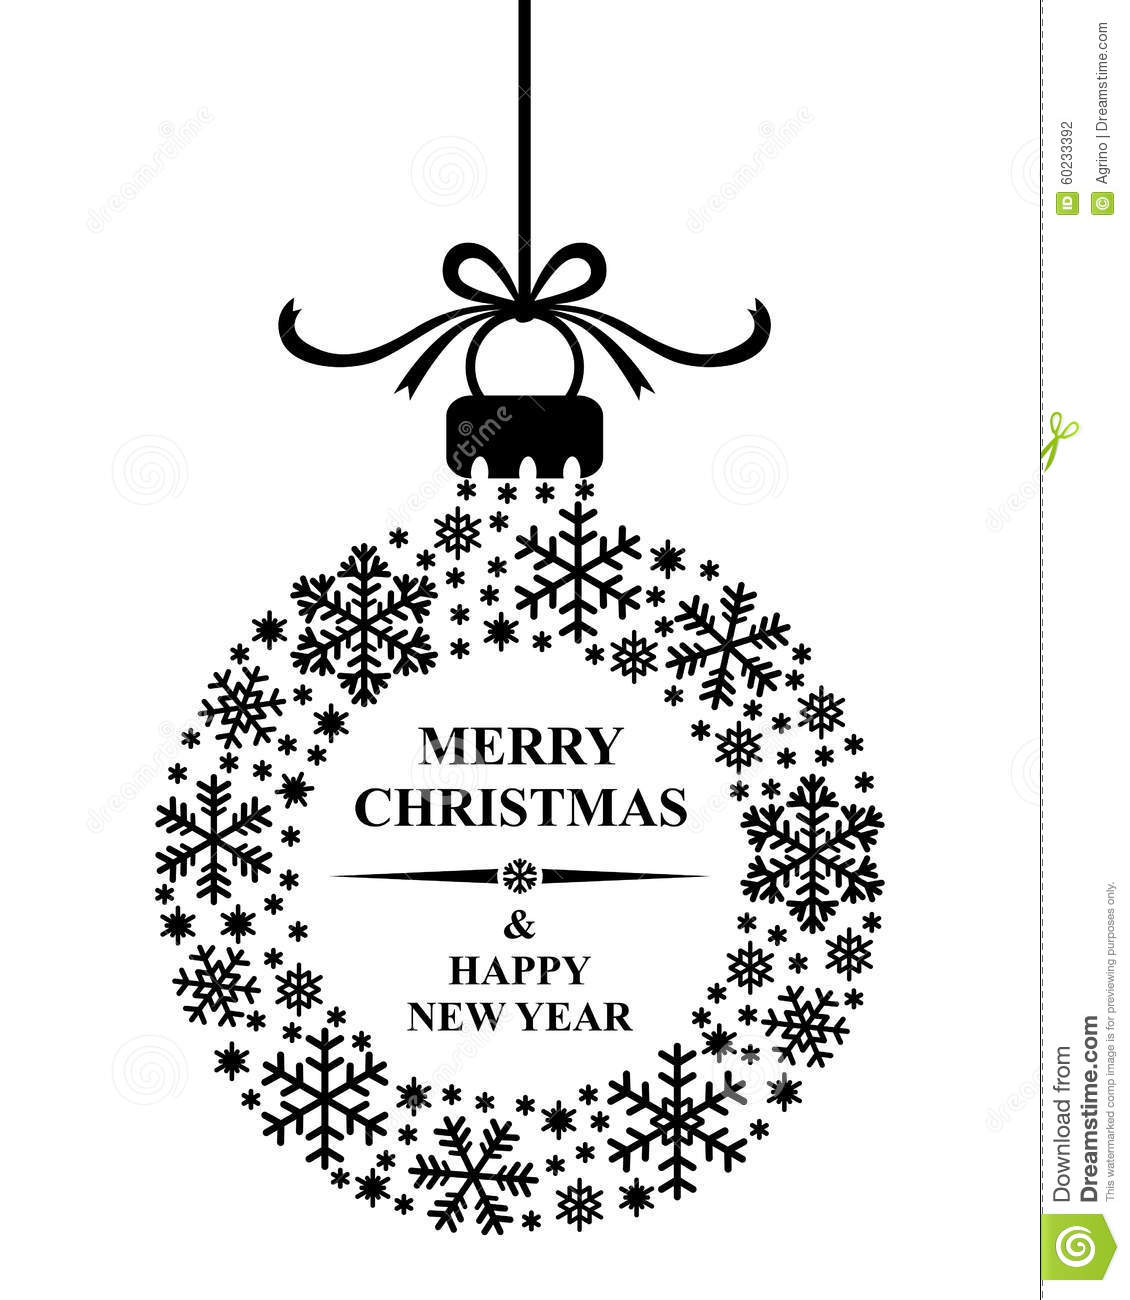 Christmas Greeting Snowflakes Ball Stock Vector